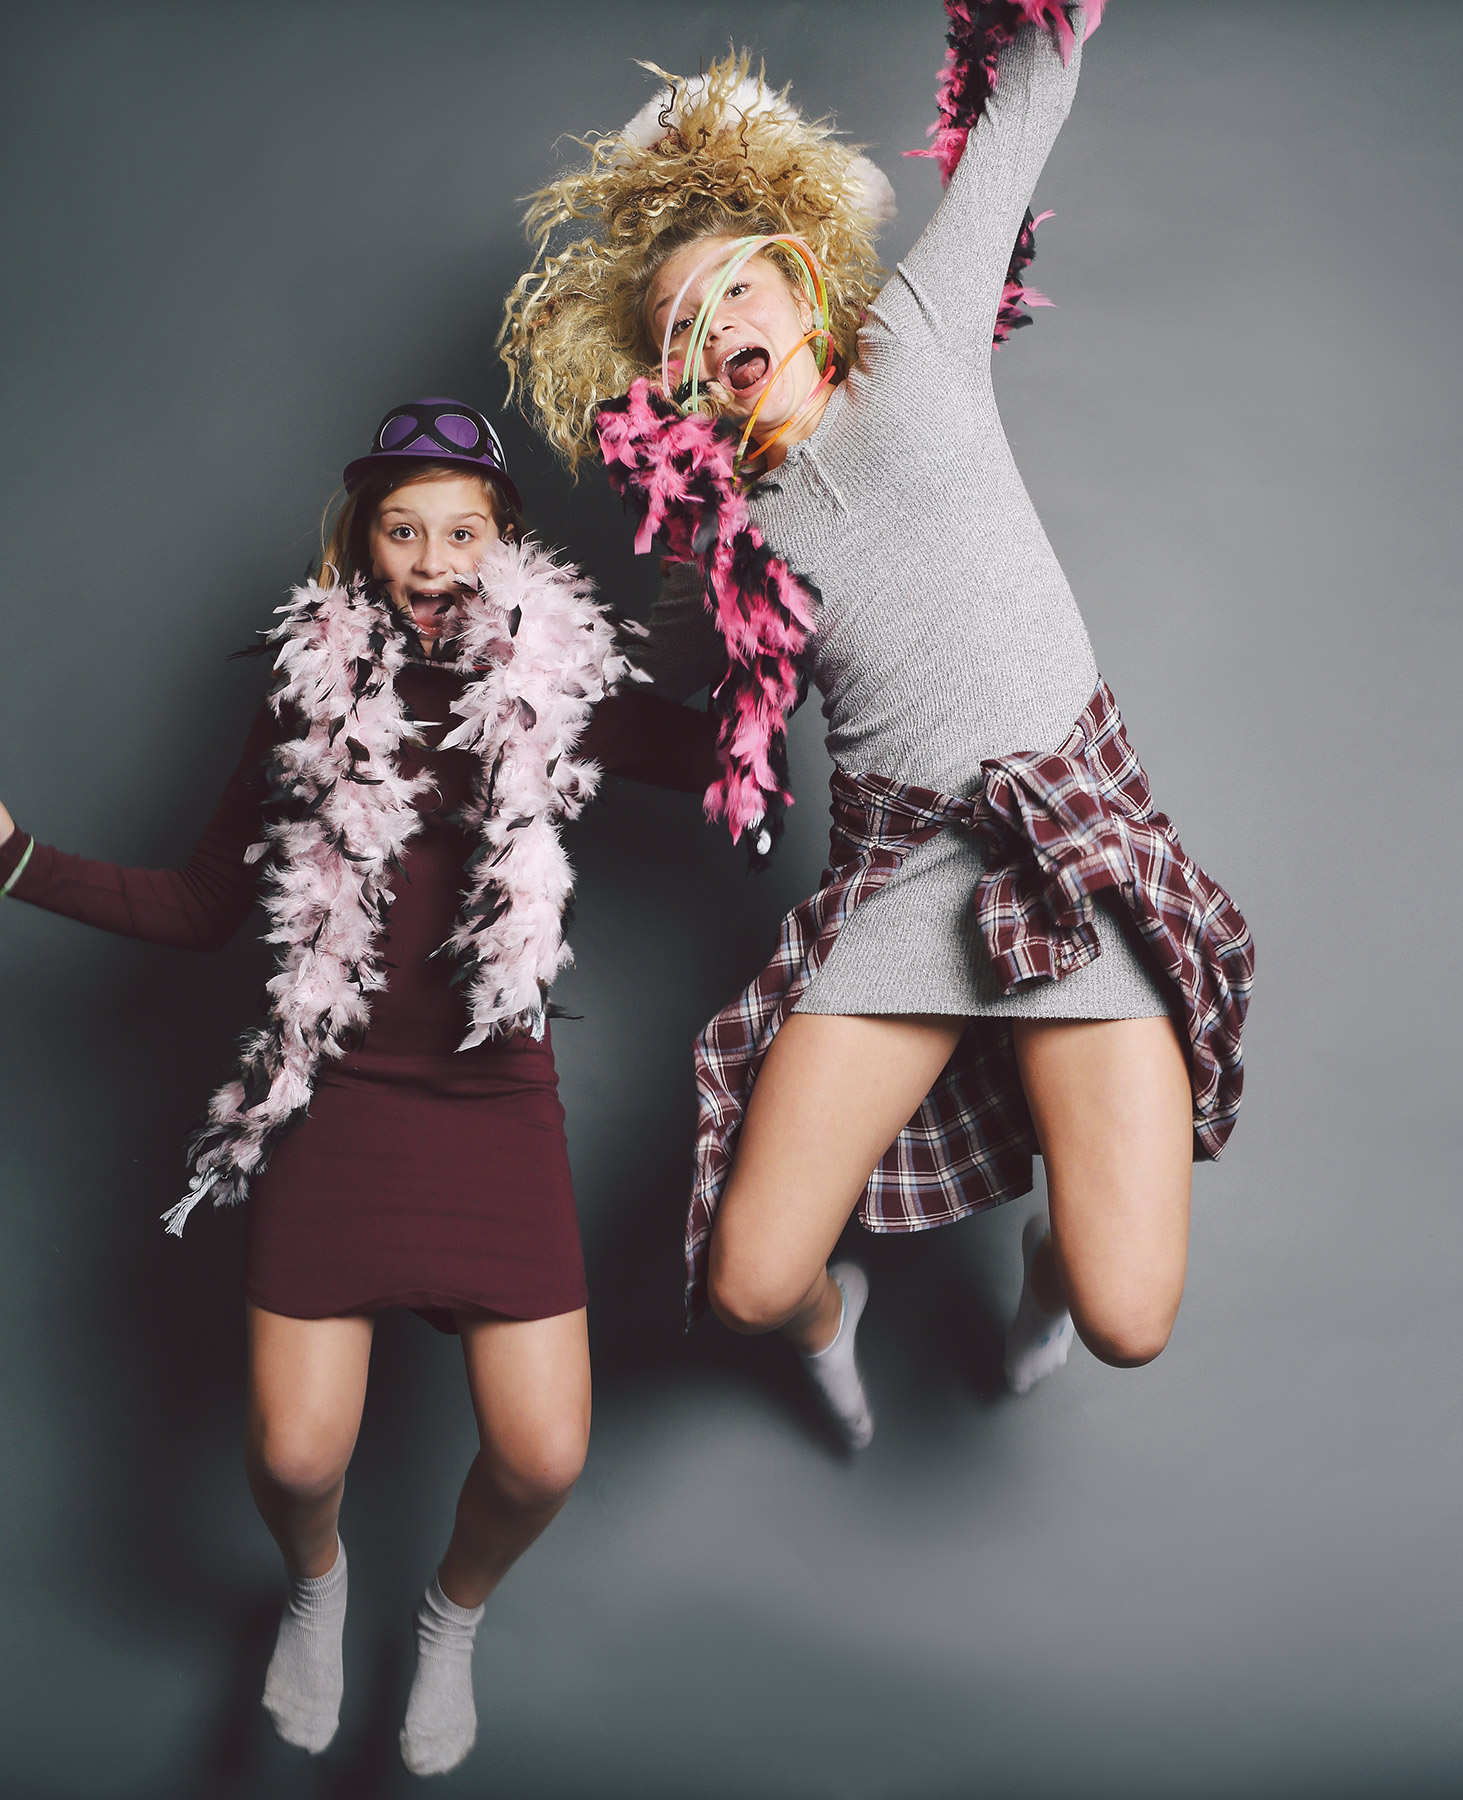 Vick-Photography-Crazy-Cam-Photo-Booth-Kids-Jumping.jpg